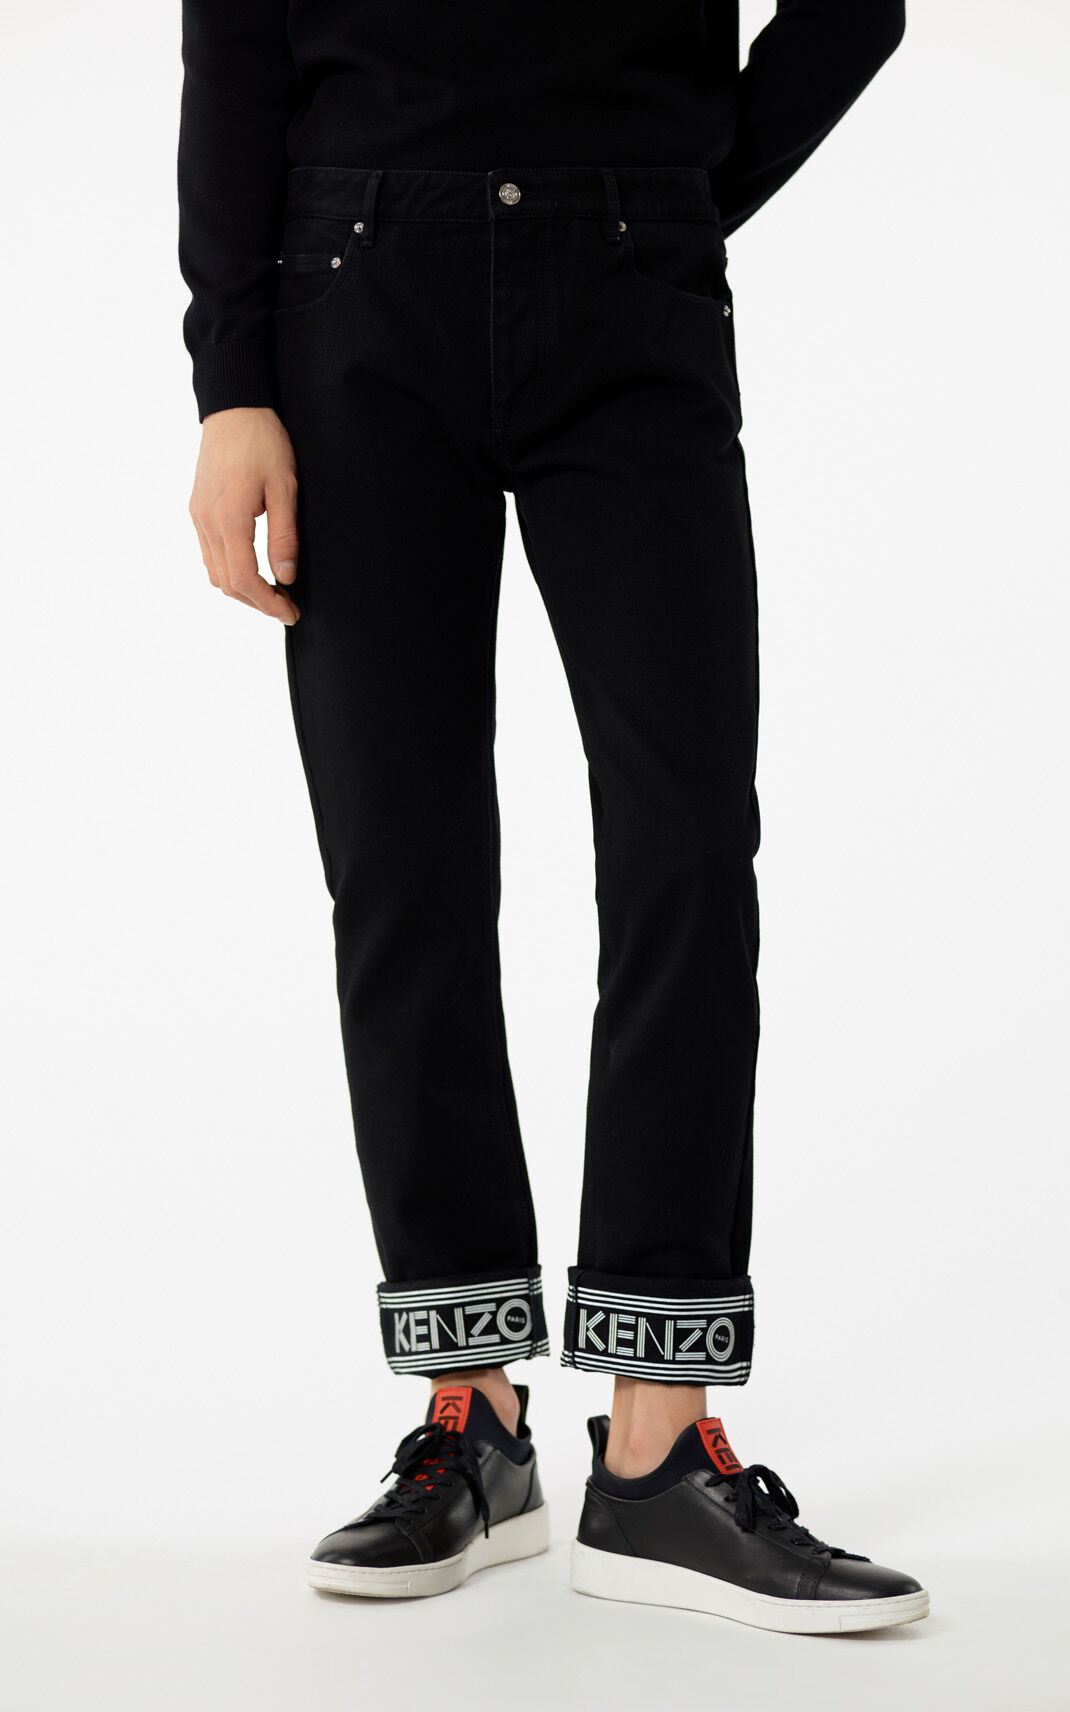 ... BLACK Slim-fit jeans with KENZO logo and turn ups for men